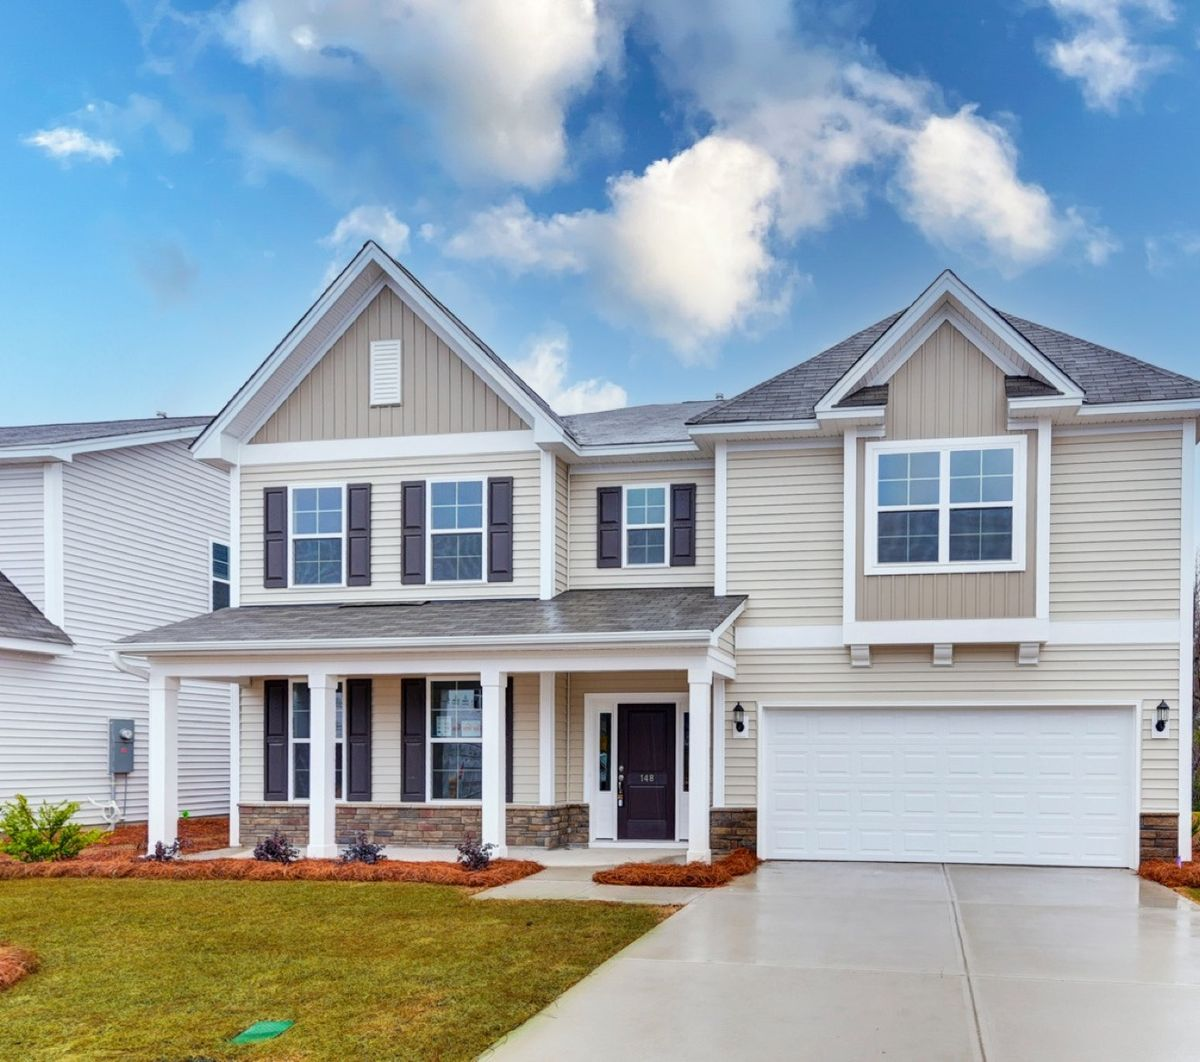 Beige two-story home with front porch